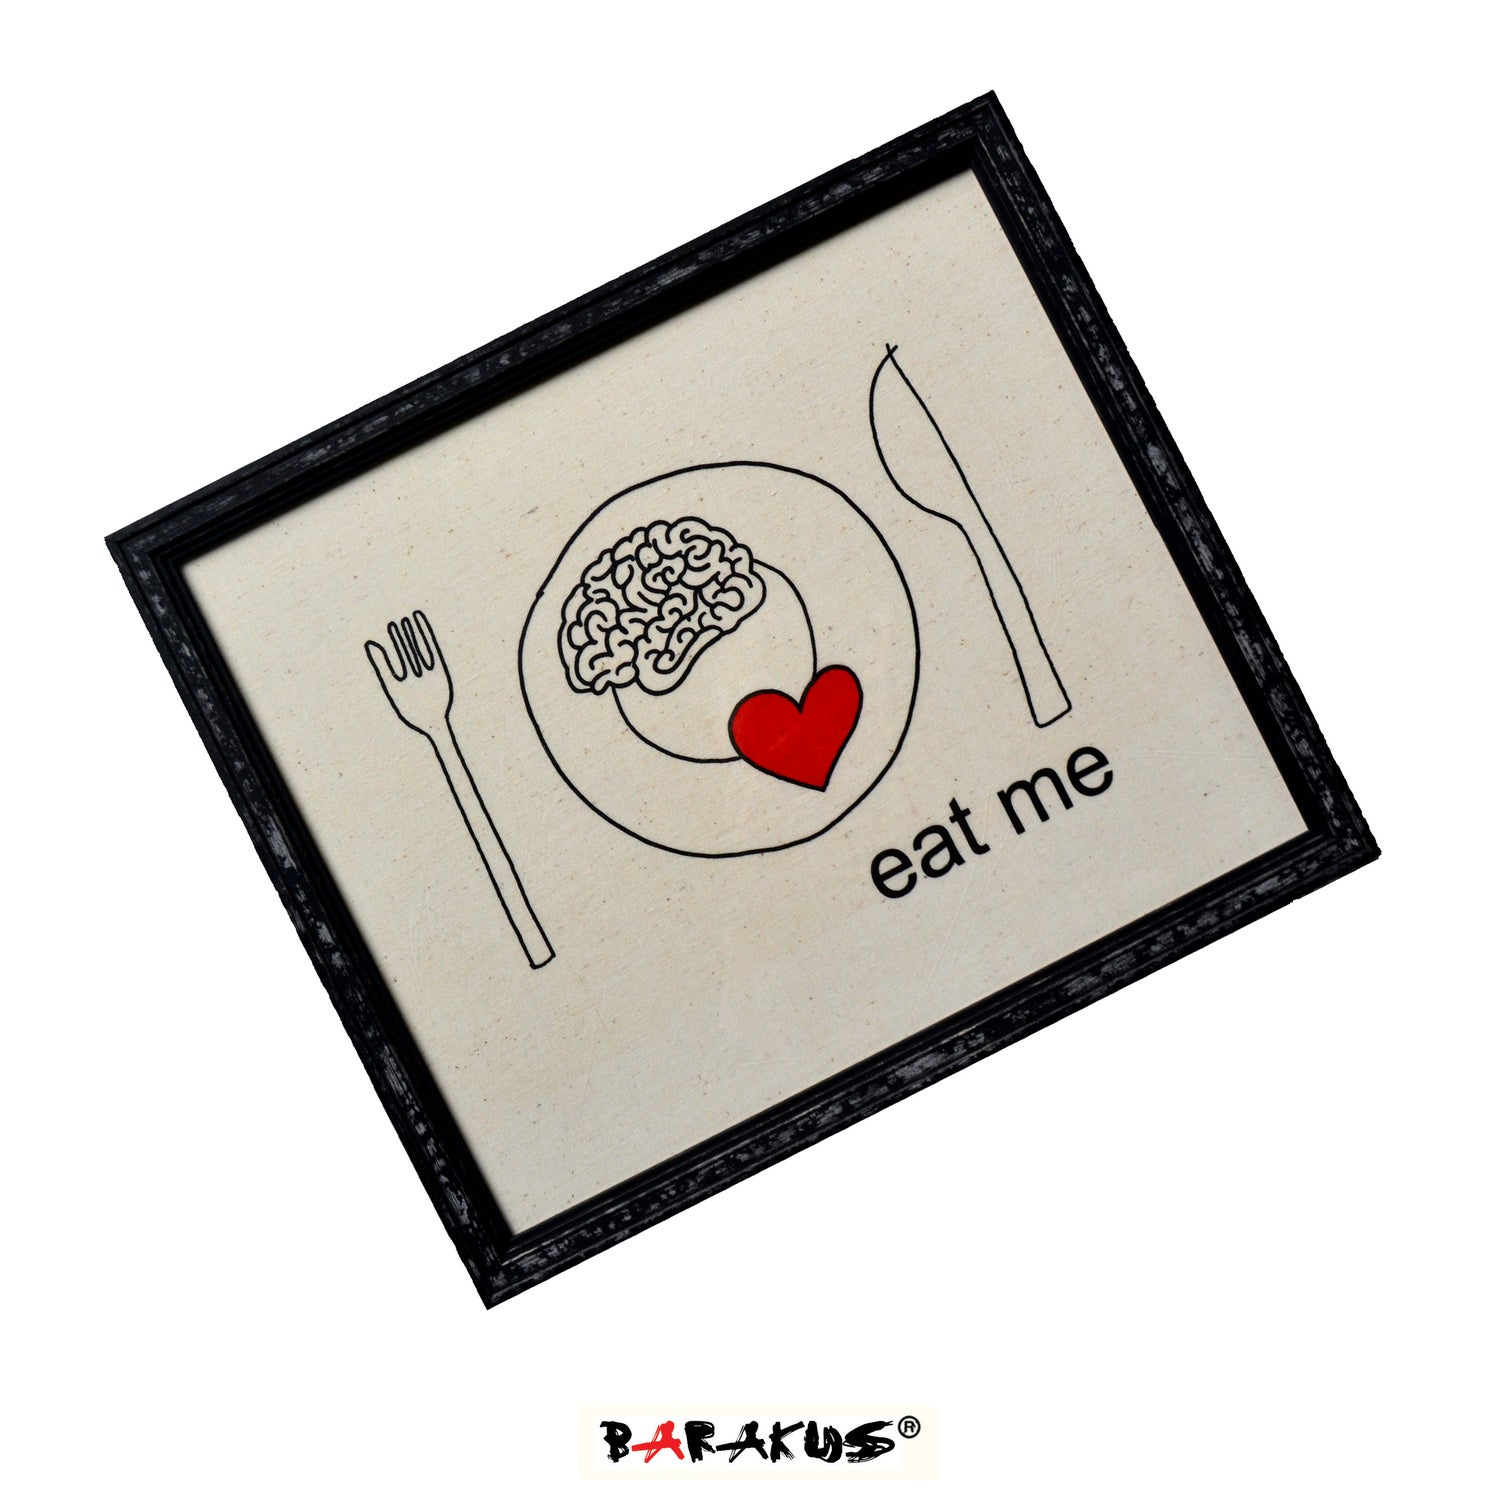 Image of EAT ME PRINT ON TEXTILE By BARAKUS